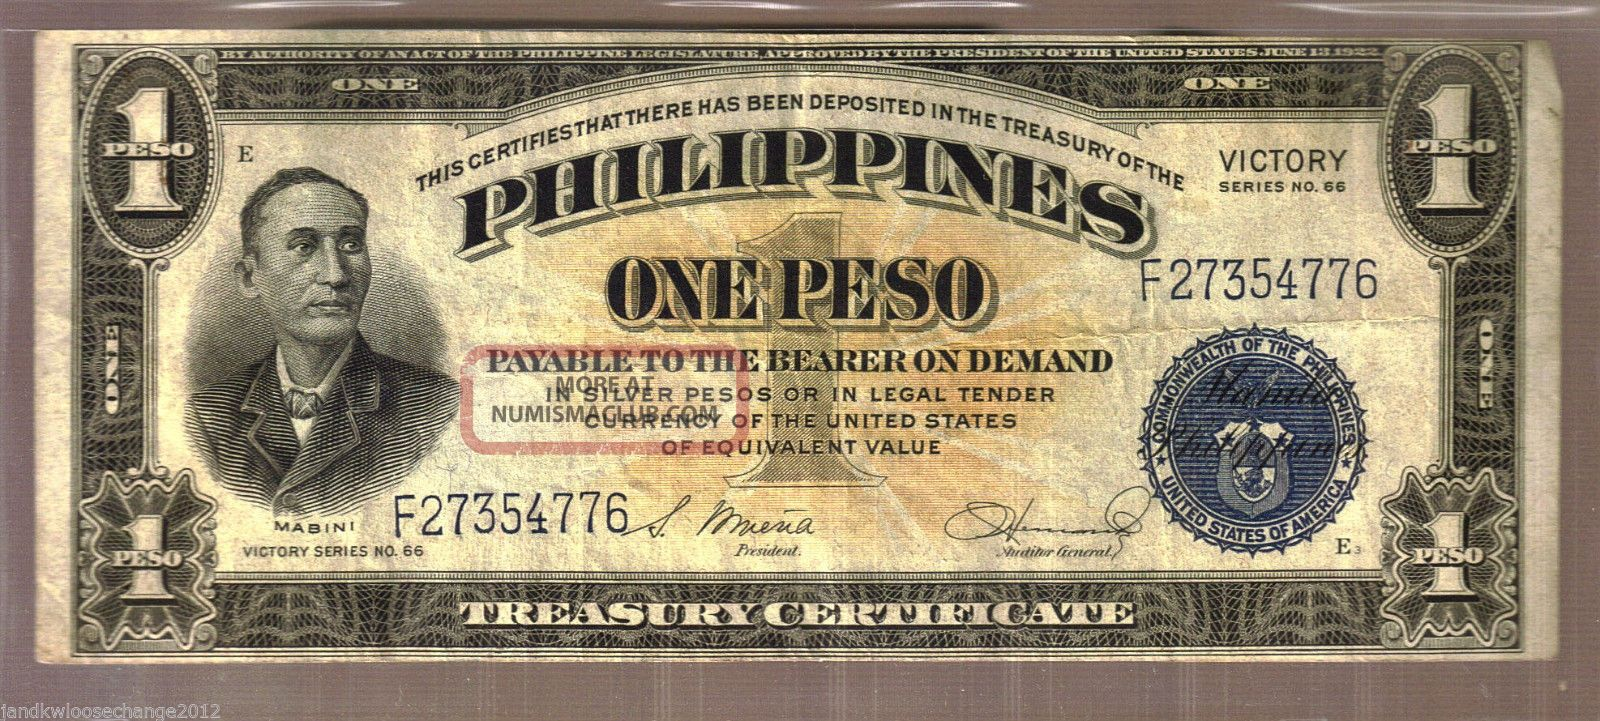 1944 philippines one peso victory note series 66 lightly